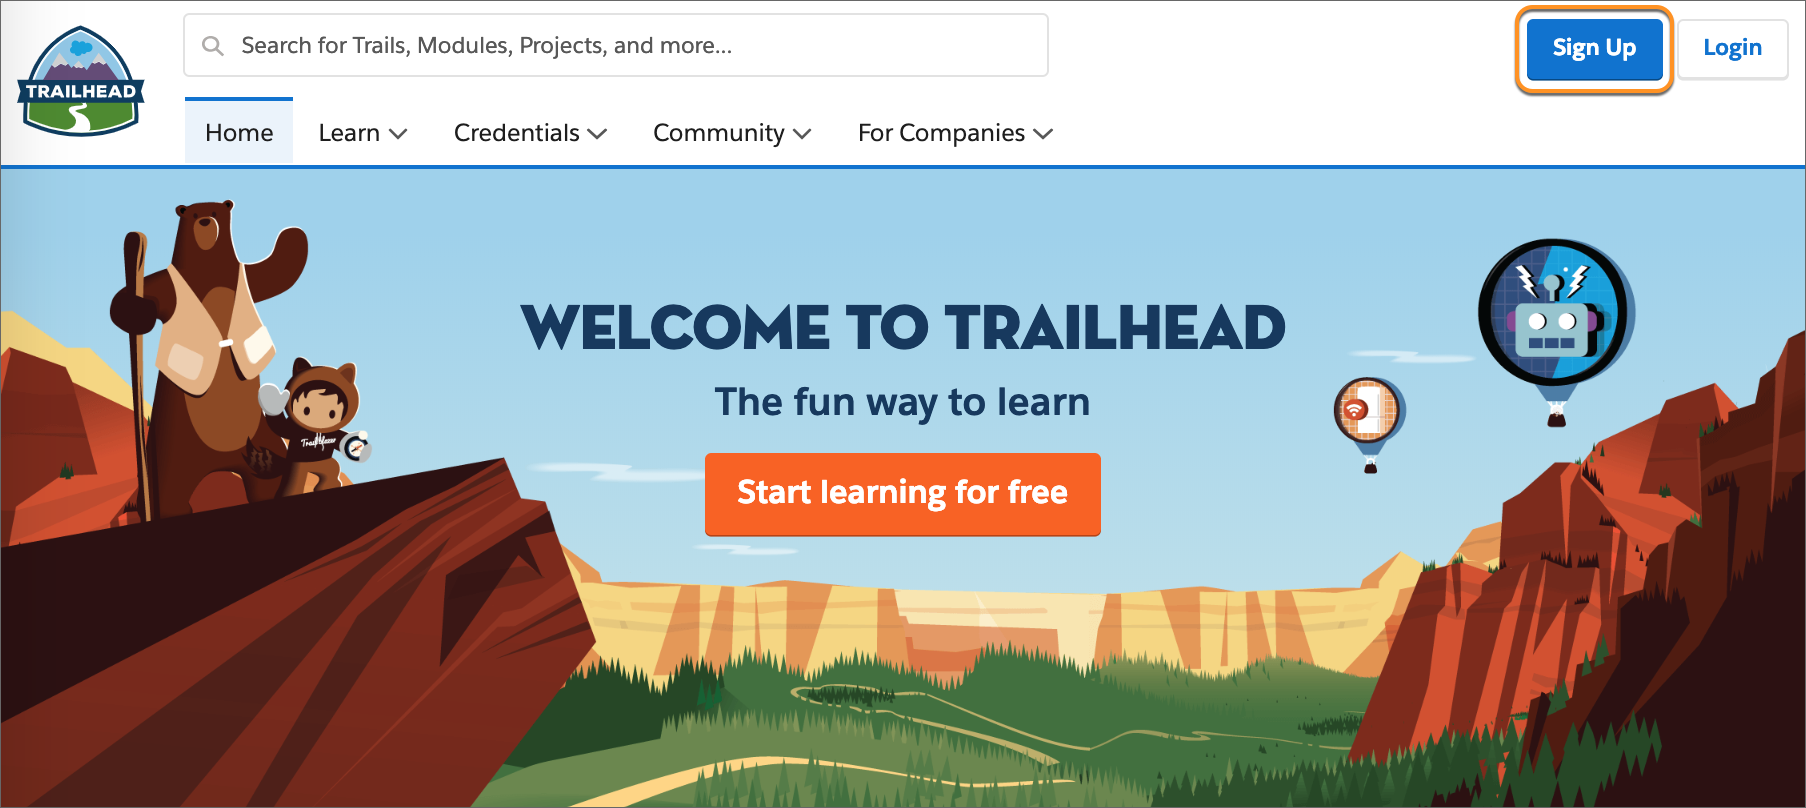 The Trailhead welcome page, with the Sign Up button called out.